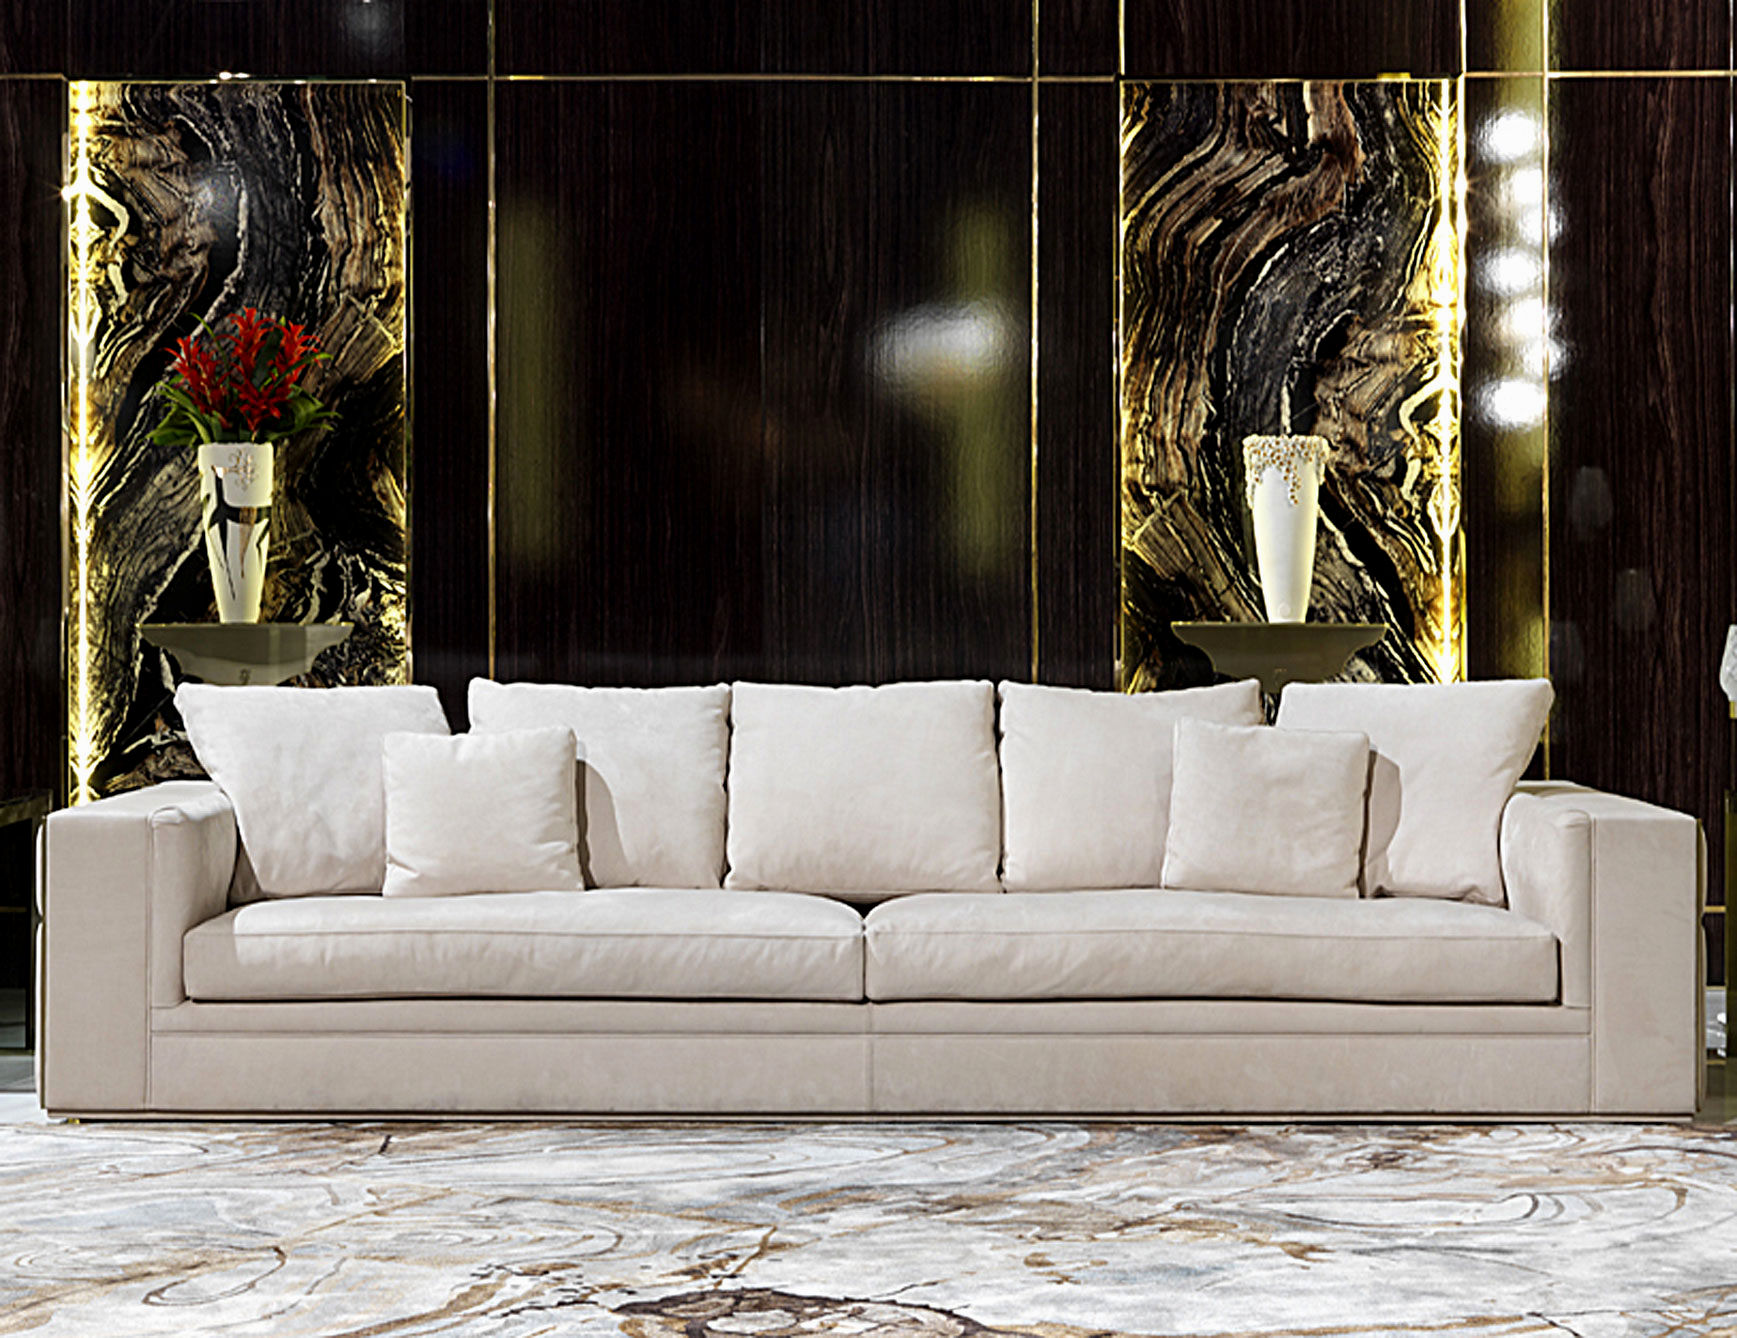 lovely designer sectional sofas online-Excellent Designer Sectional sofas Pattern